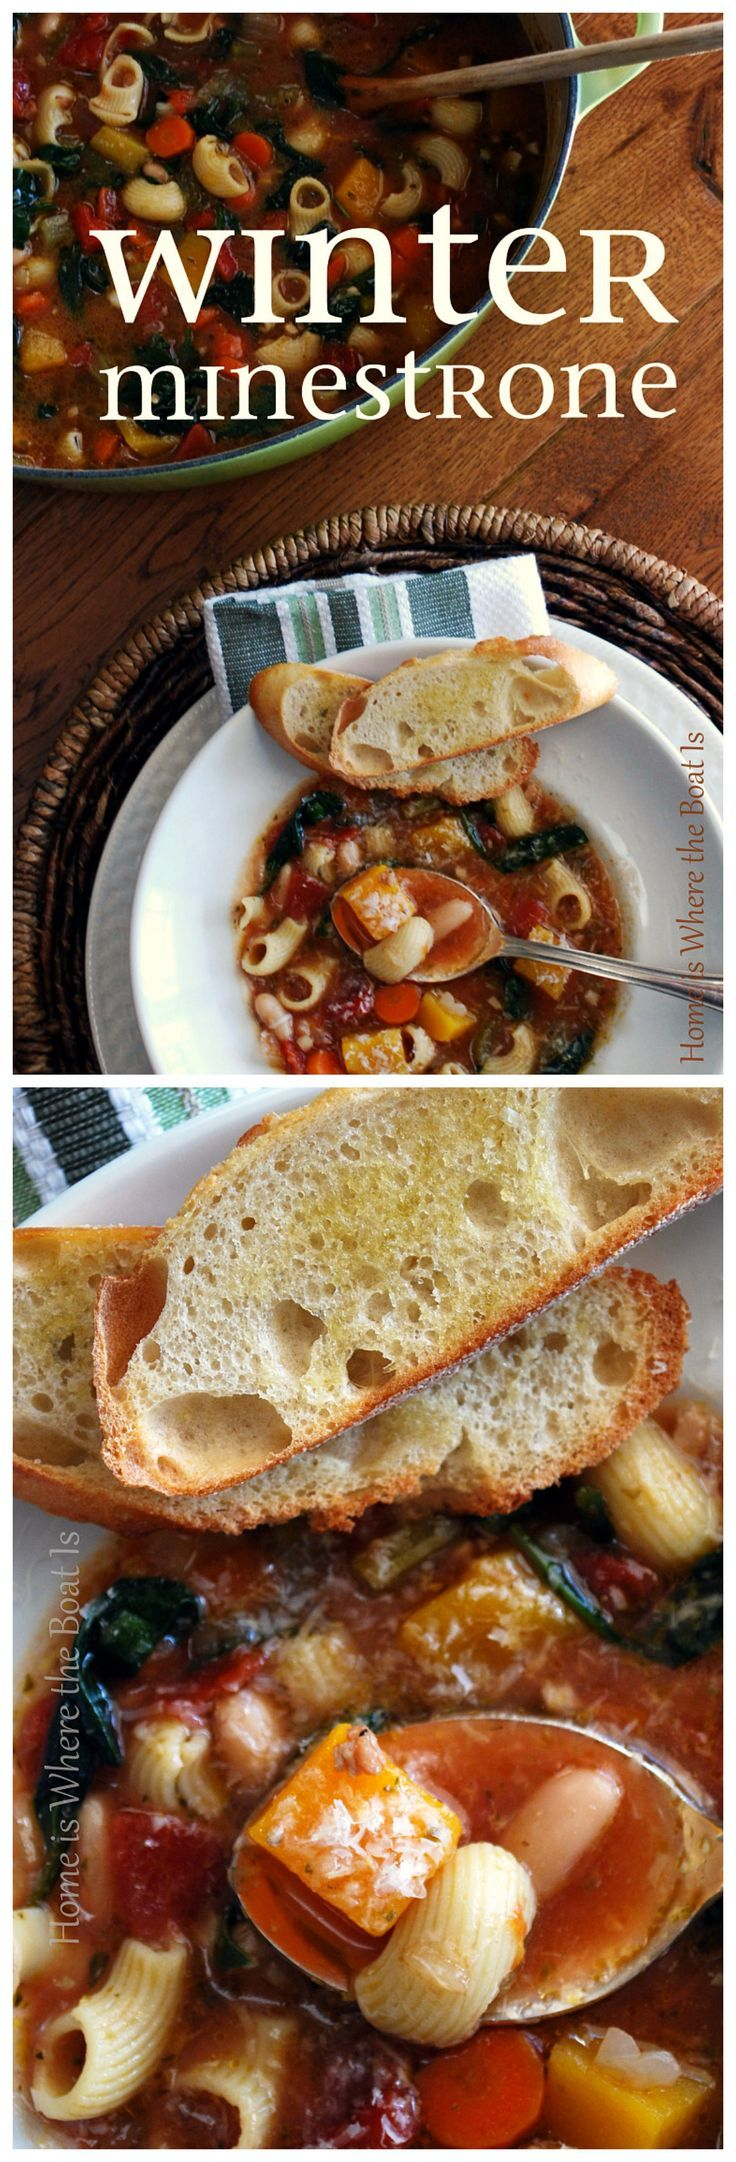 Ina Garten's Winter Minestrone! I can't say enough good things about this soup recipe...foolproof, hearty, comforting, but the proof is in the bowl! | http://homeiswheretheboatis.net #souprecipe #barefootcontessa #minestrone